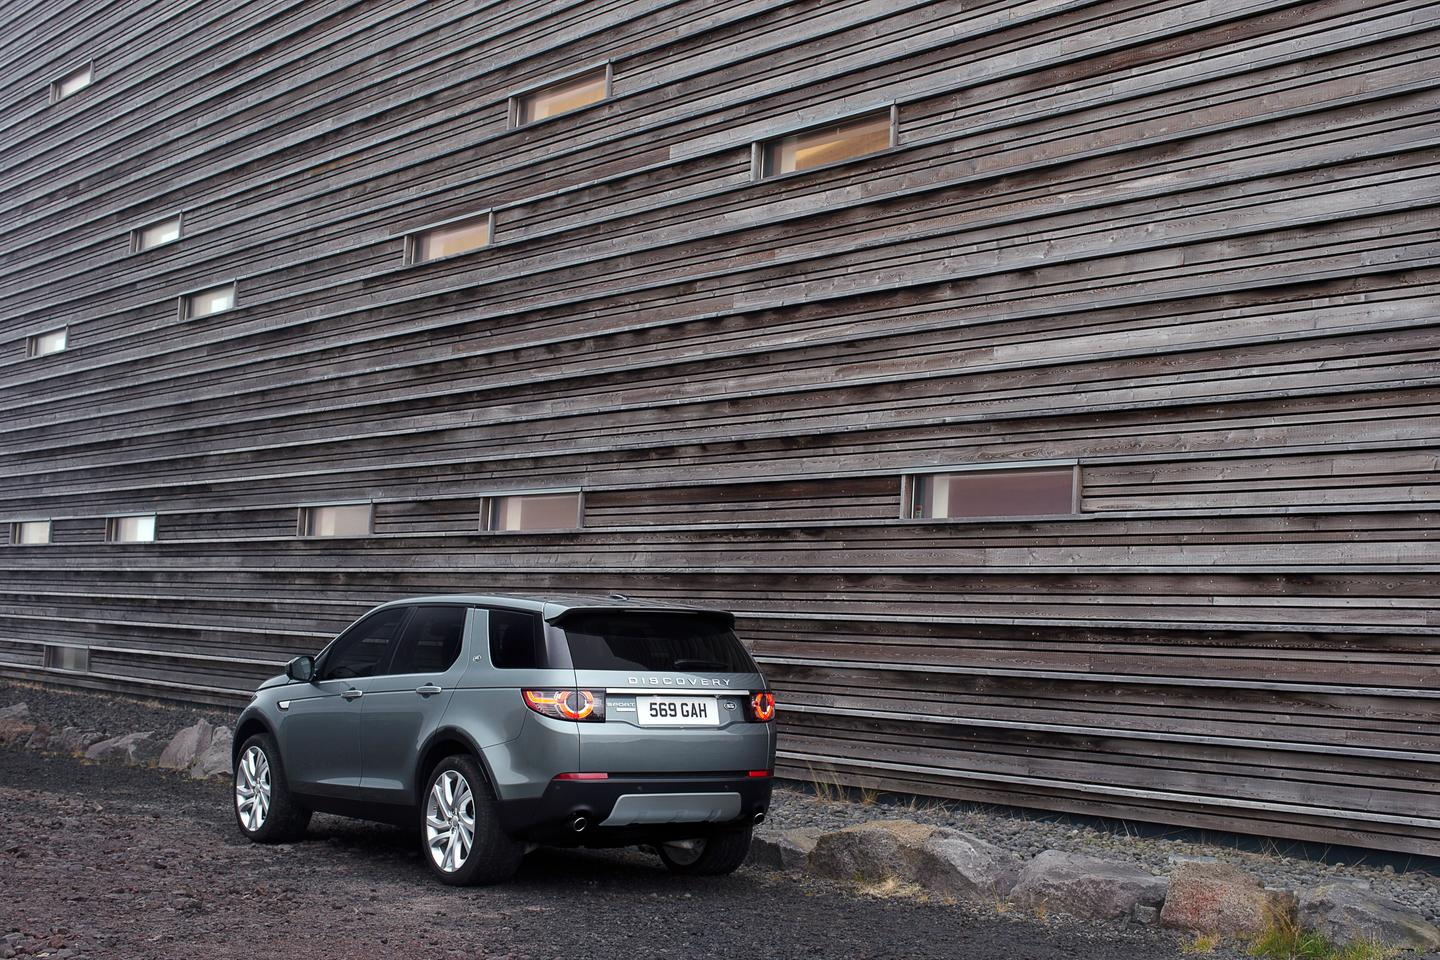 The Land Rover Discovery Sport is available in 2015